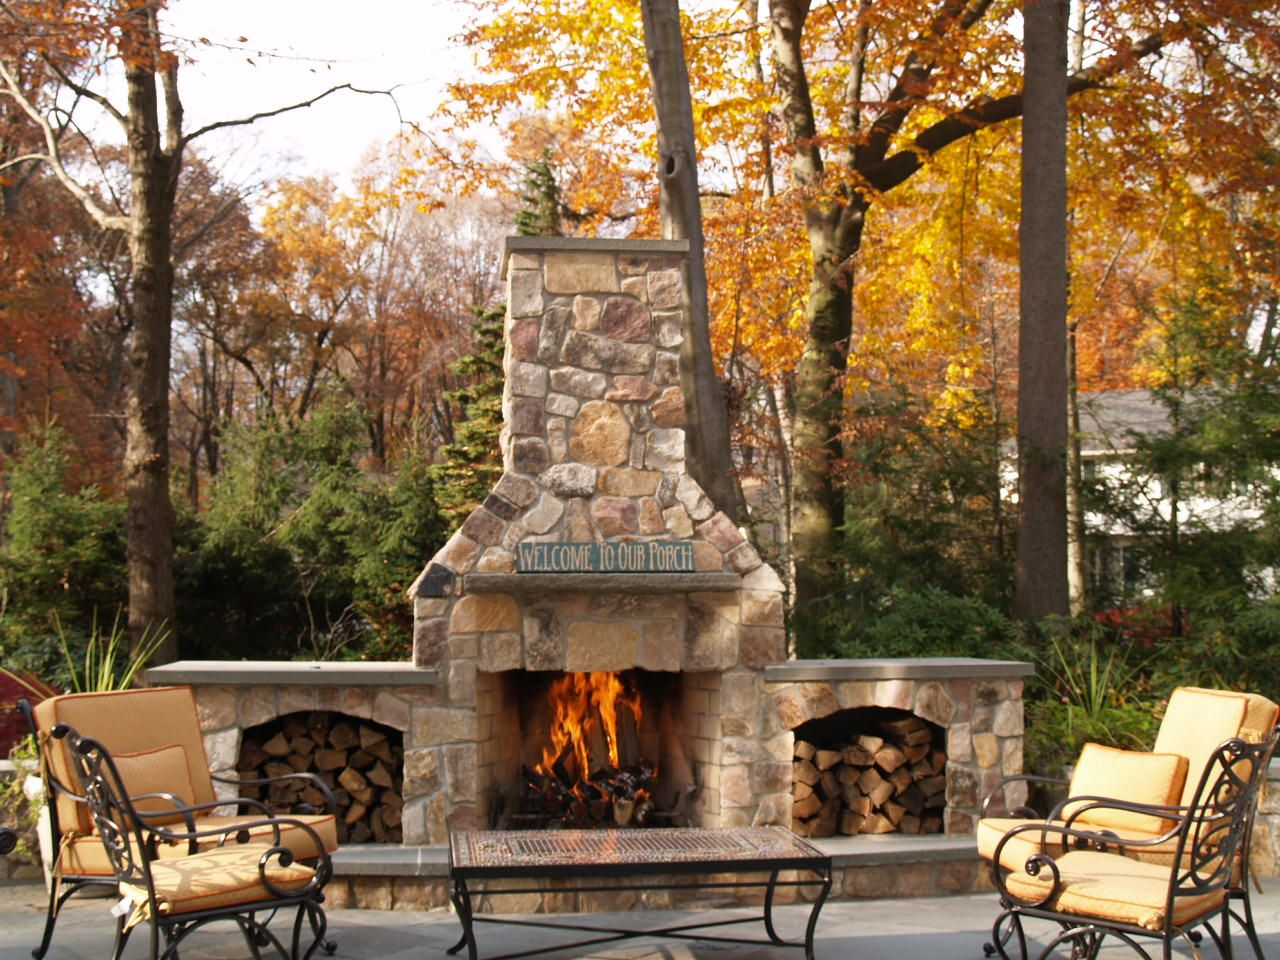 Nothing Like An Outdoor Stone Fireplace Someday Outdoor Fireplace Patio Rustic Outdoor Fireplaces Outdoor Stone Fireplaces